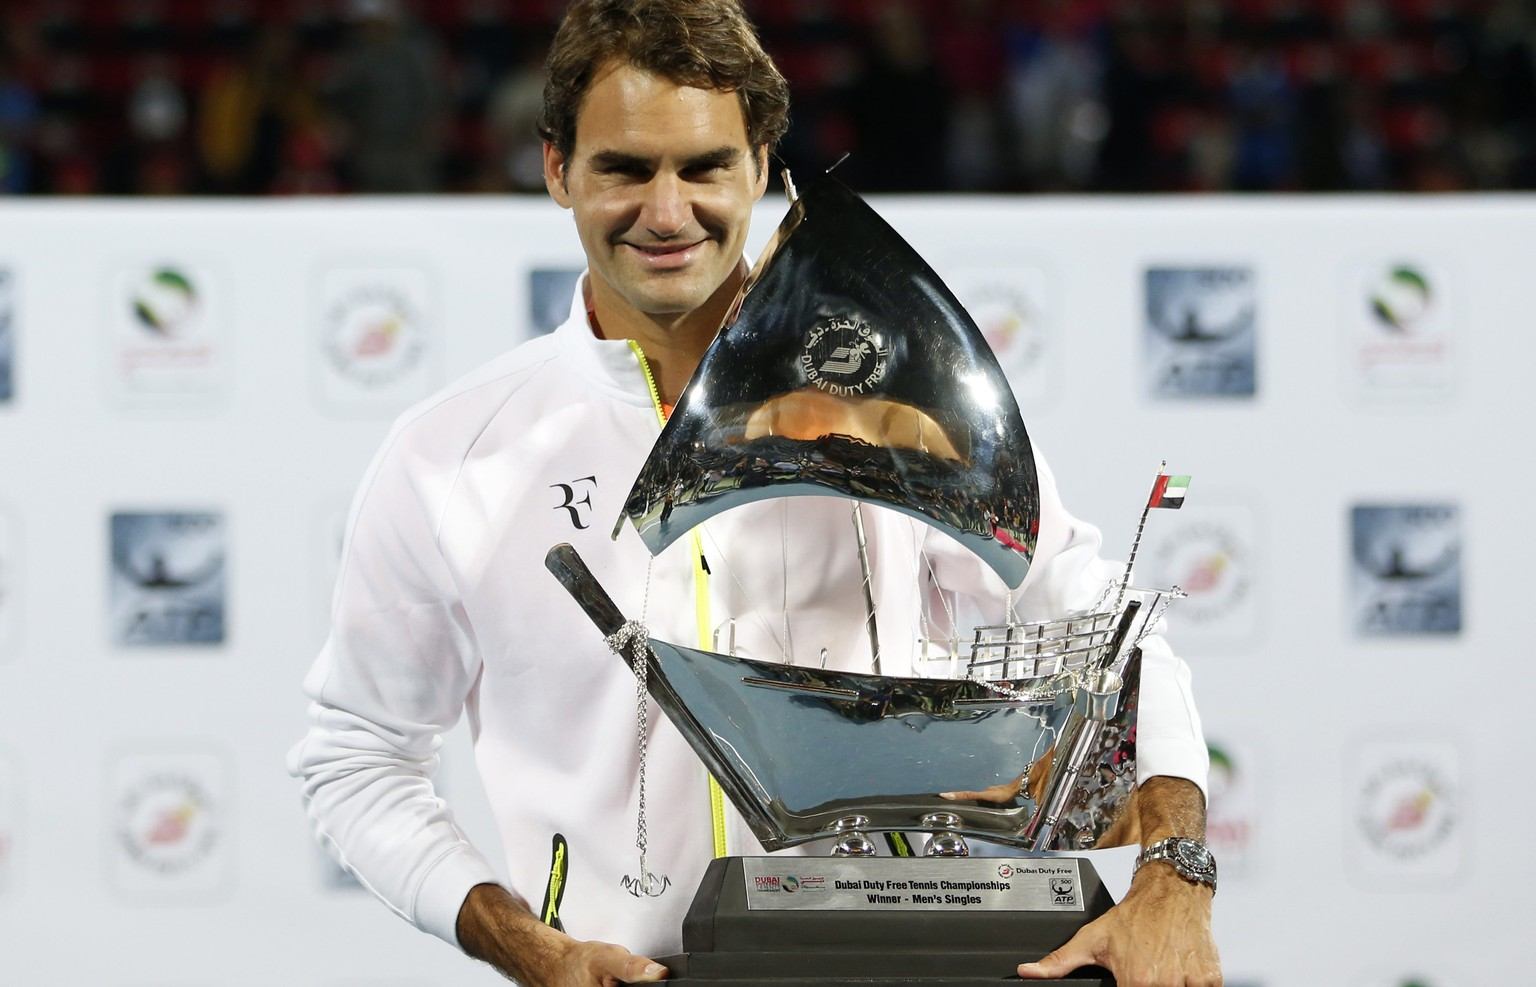 Roger Federer of Switzerland poses with his trophy after winning his final match against Novak Djokovic of Serbia at the ATP Championships tennis tournament in Dubai, February 28, 2015. REUTERS/Ahmed Jadallah (UNITED ARAB EMIRATES - Tags: SPORT TENNIS)